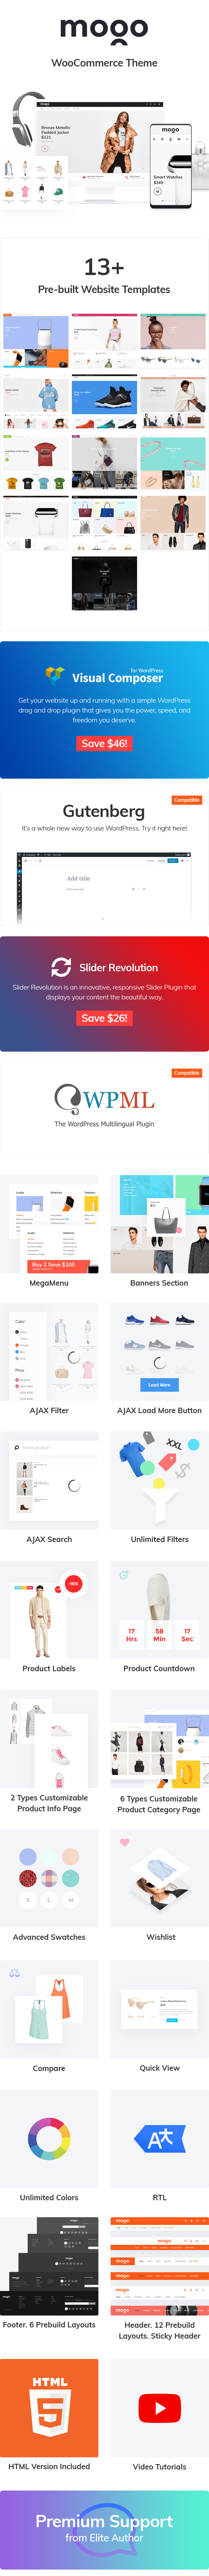 Mogo - Fastest Fashion WooCommerce WordPress Theme - 4